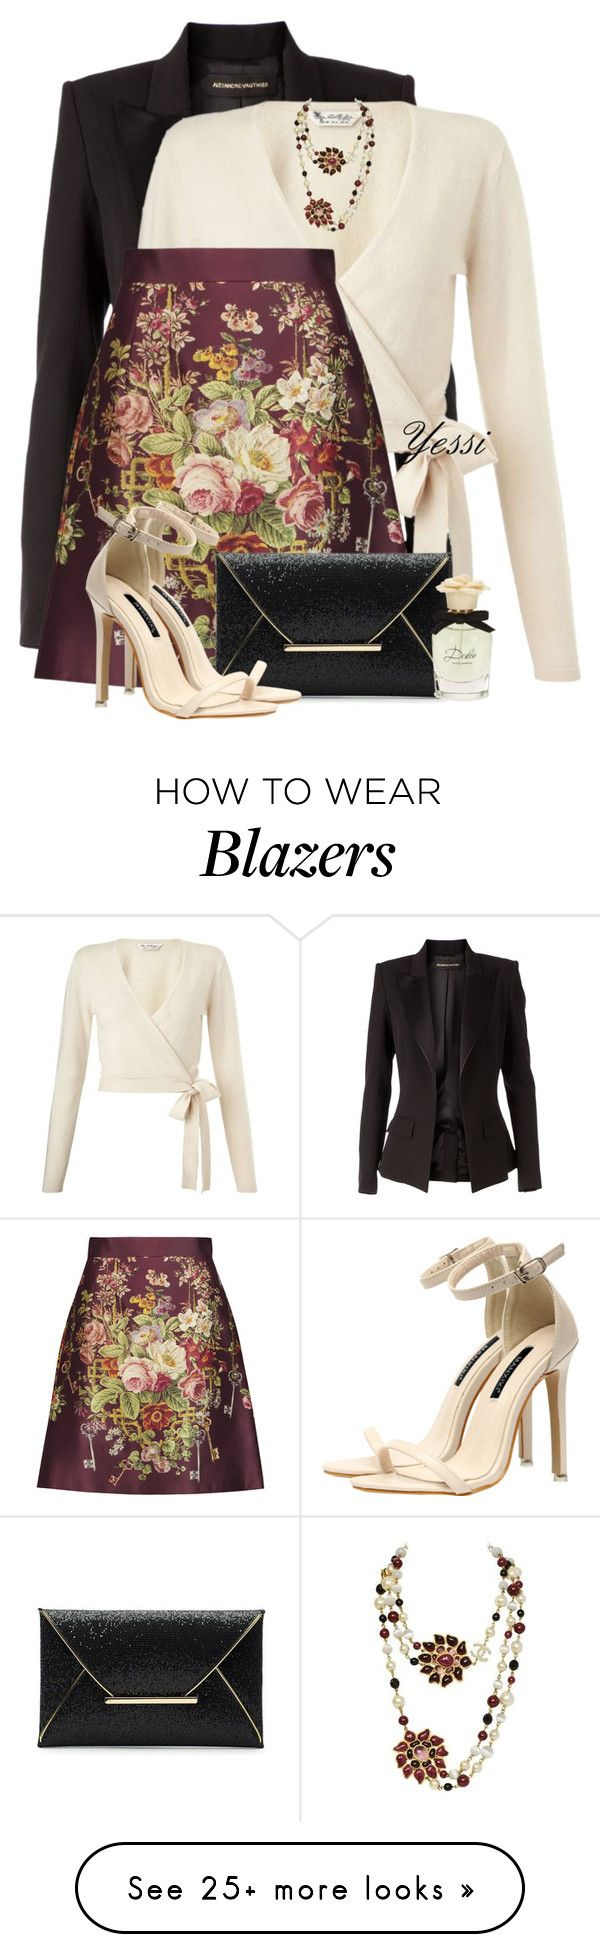 """~  D&G Satin Mini Skirt  ~"" by pretty-fashion-designs on Polyvore featuring Alexandre Vauthier, Miss Selfridge, Dolce&Gabbana and Chanel"